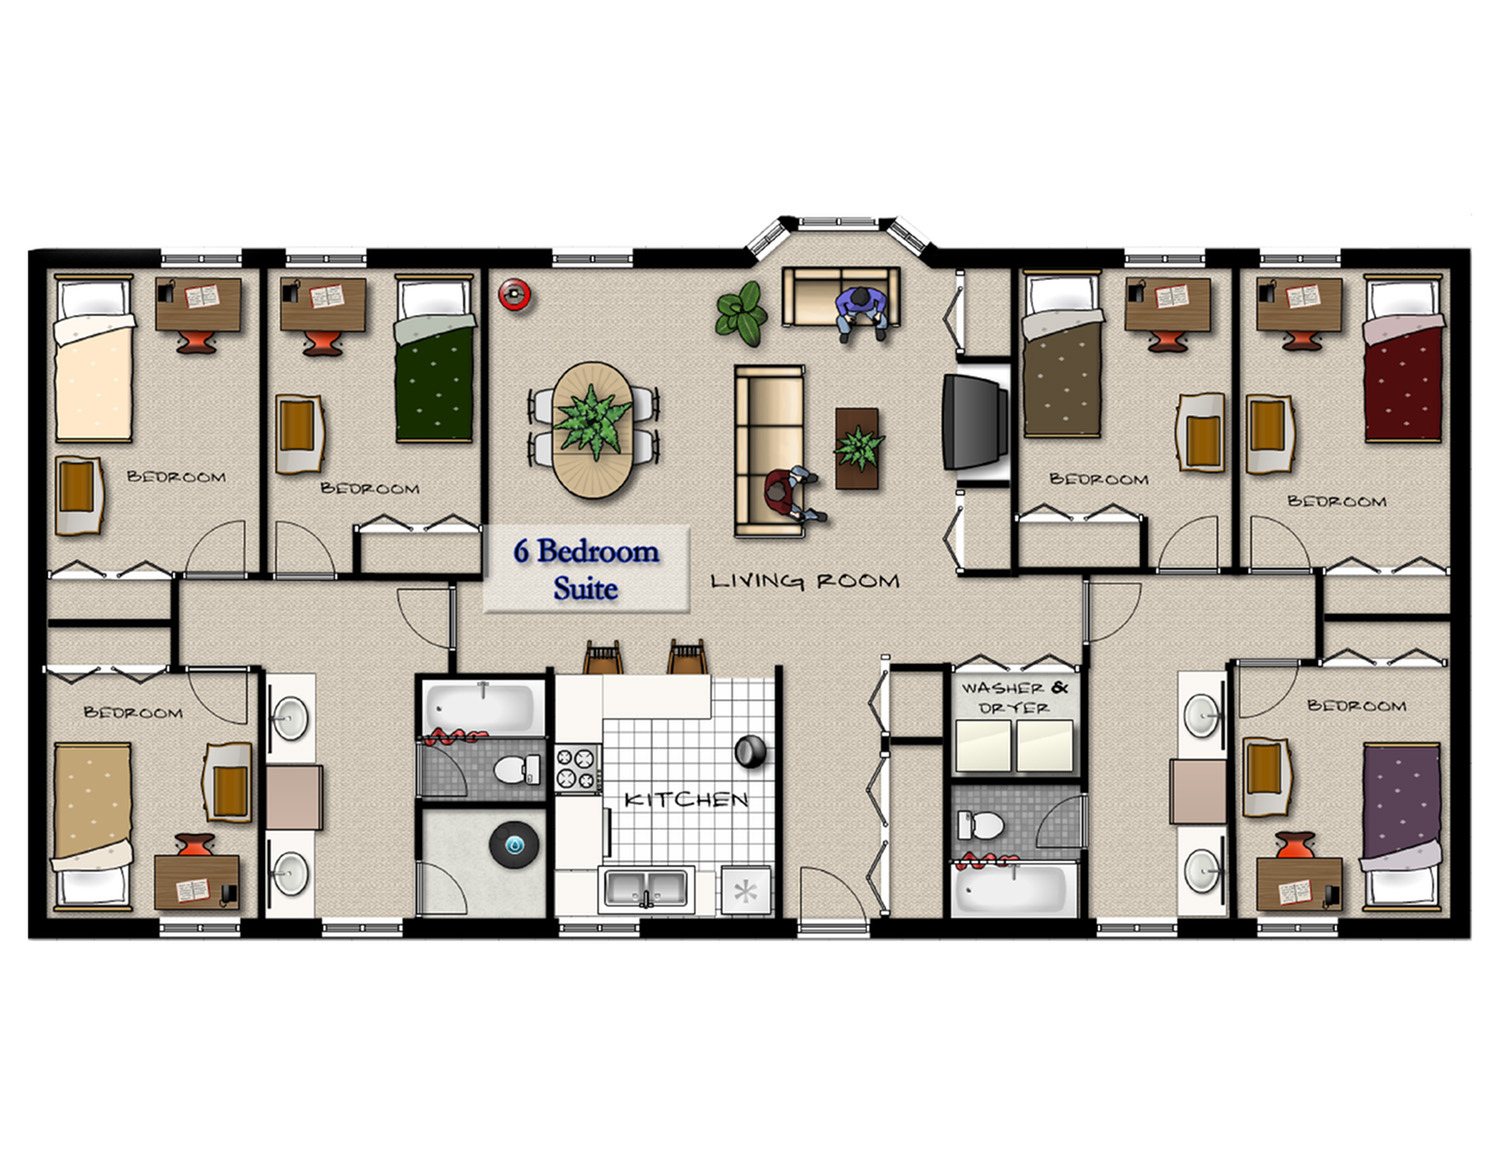 6 bed 2 bath apartment in provo ut king henry apartments for 6 bedroom plan